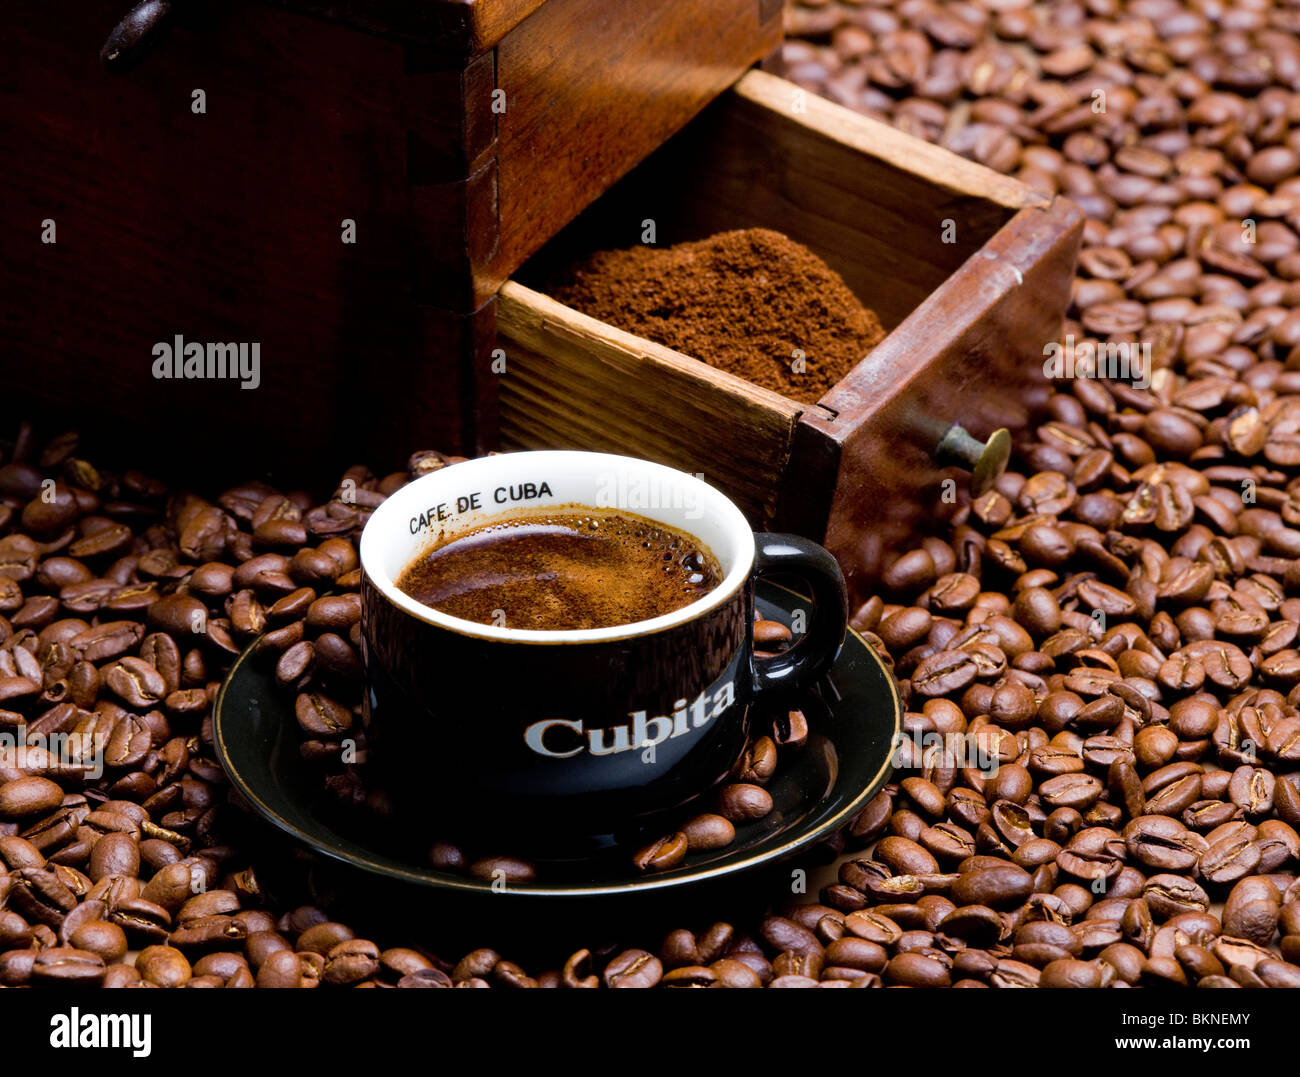 detail of coffee mill with coffee beans and cup of coffee - Stock Image